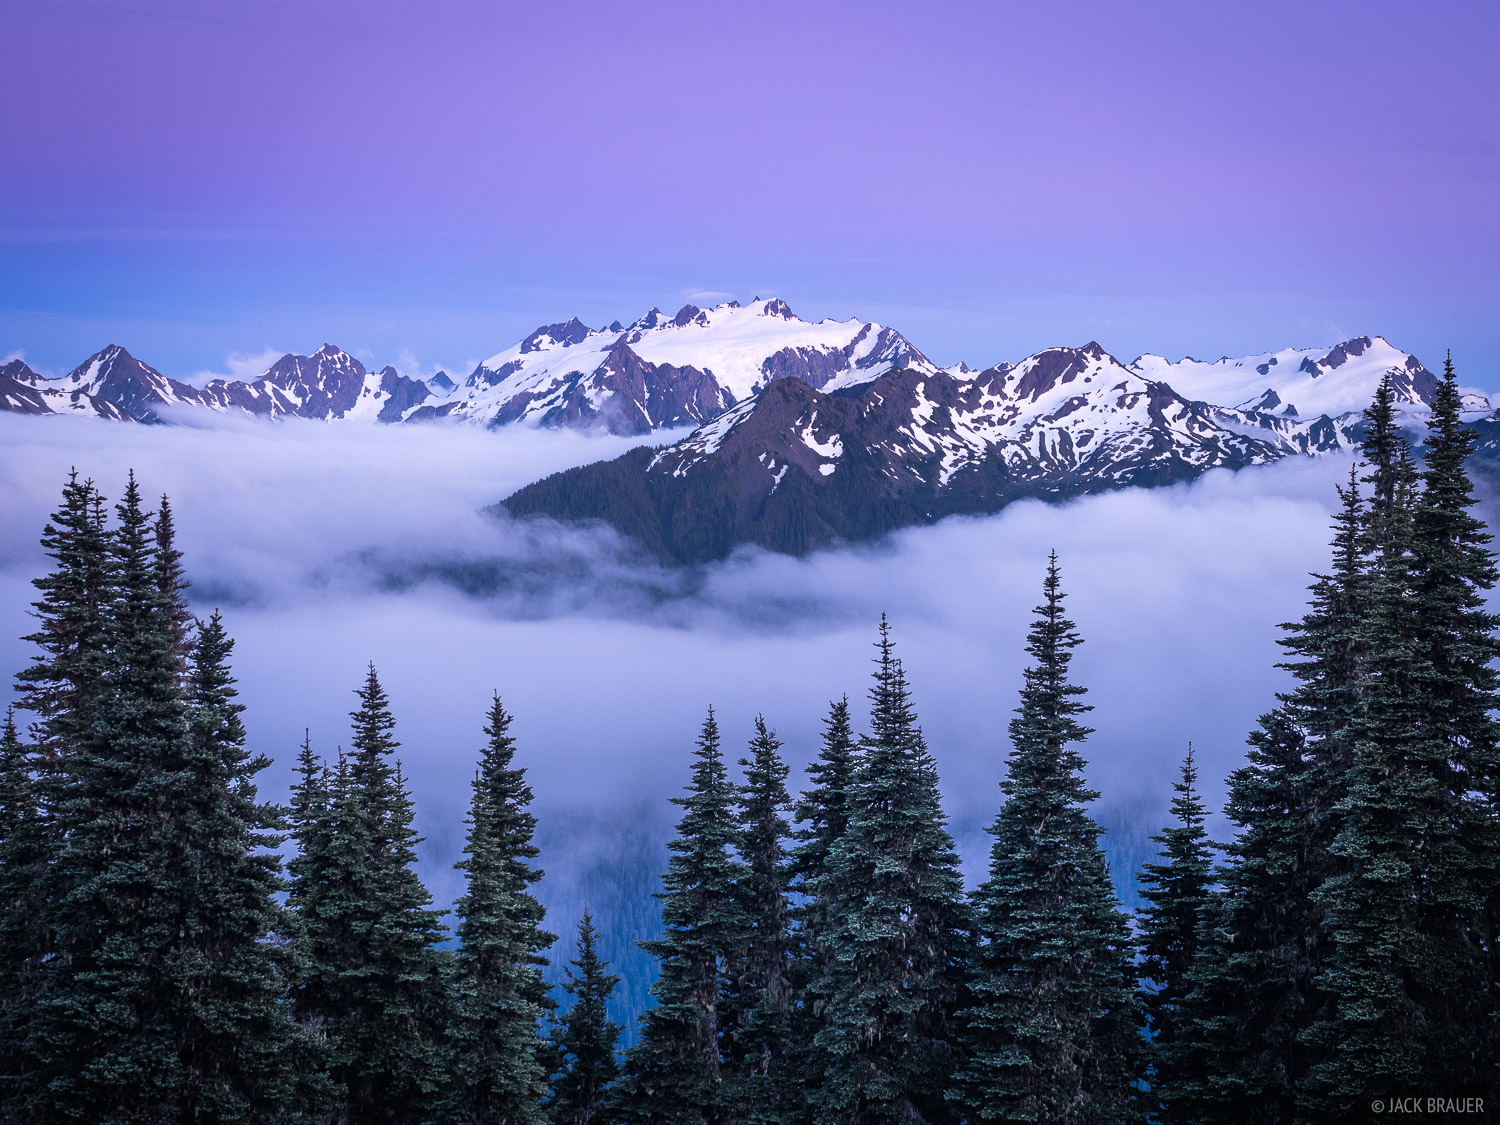 Mount Olympus, Olympic Peninsula, Sol Duc, Washington, Olympic National Park, photo